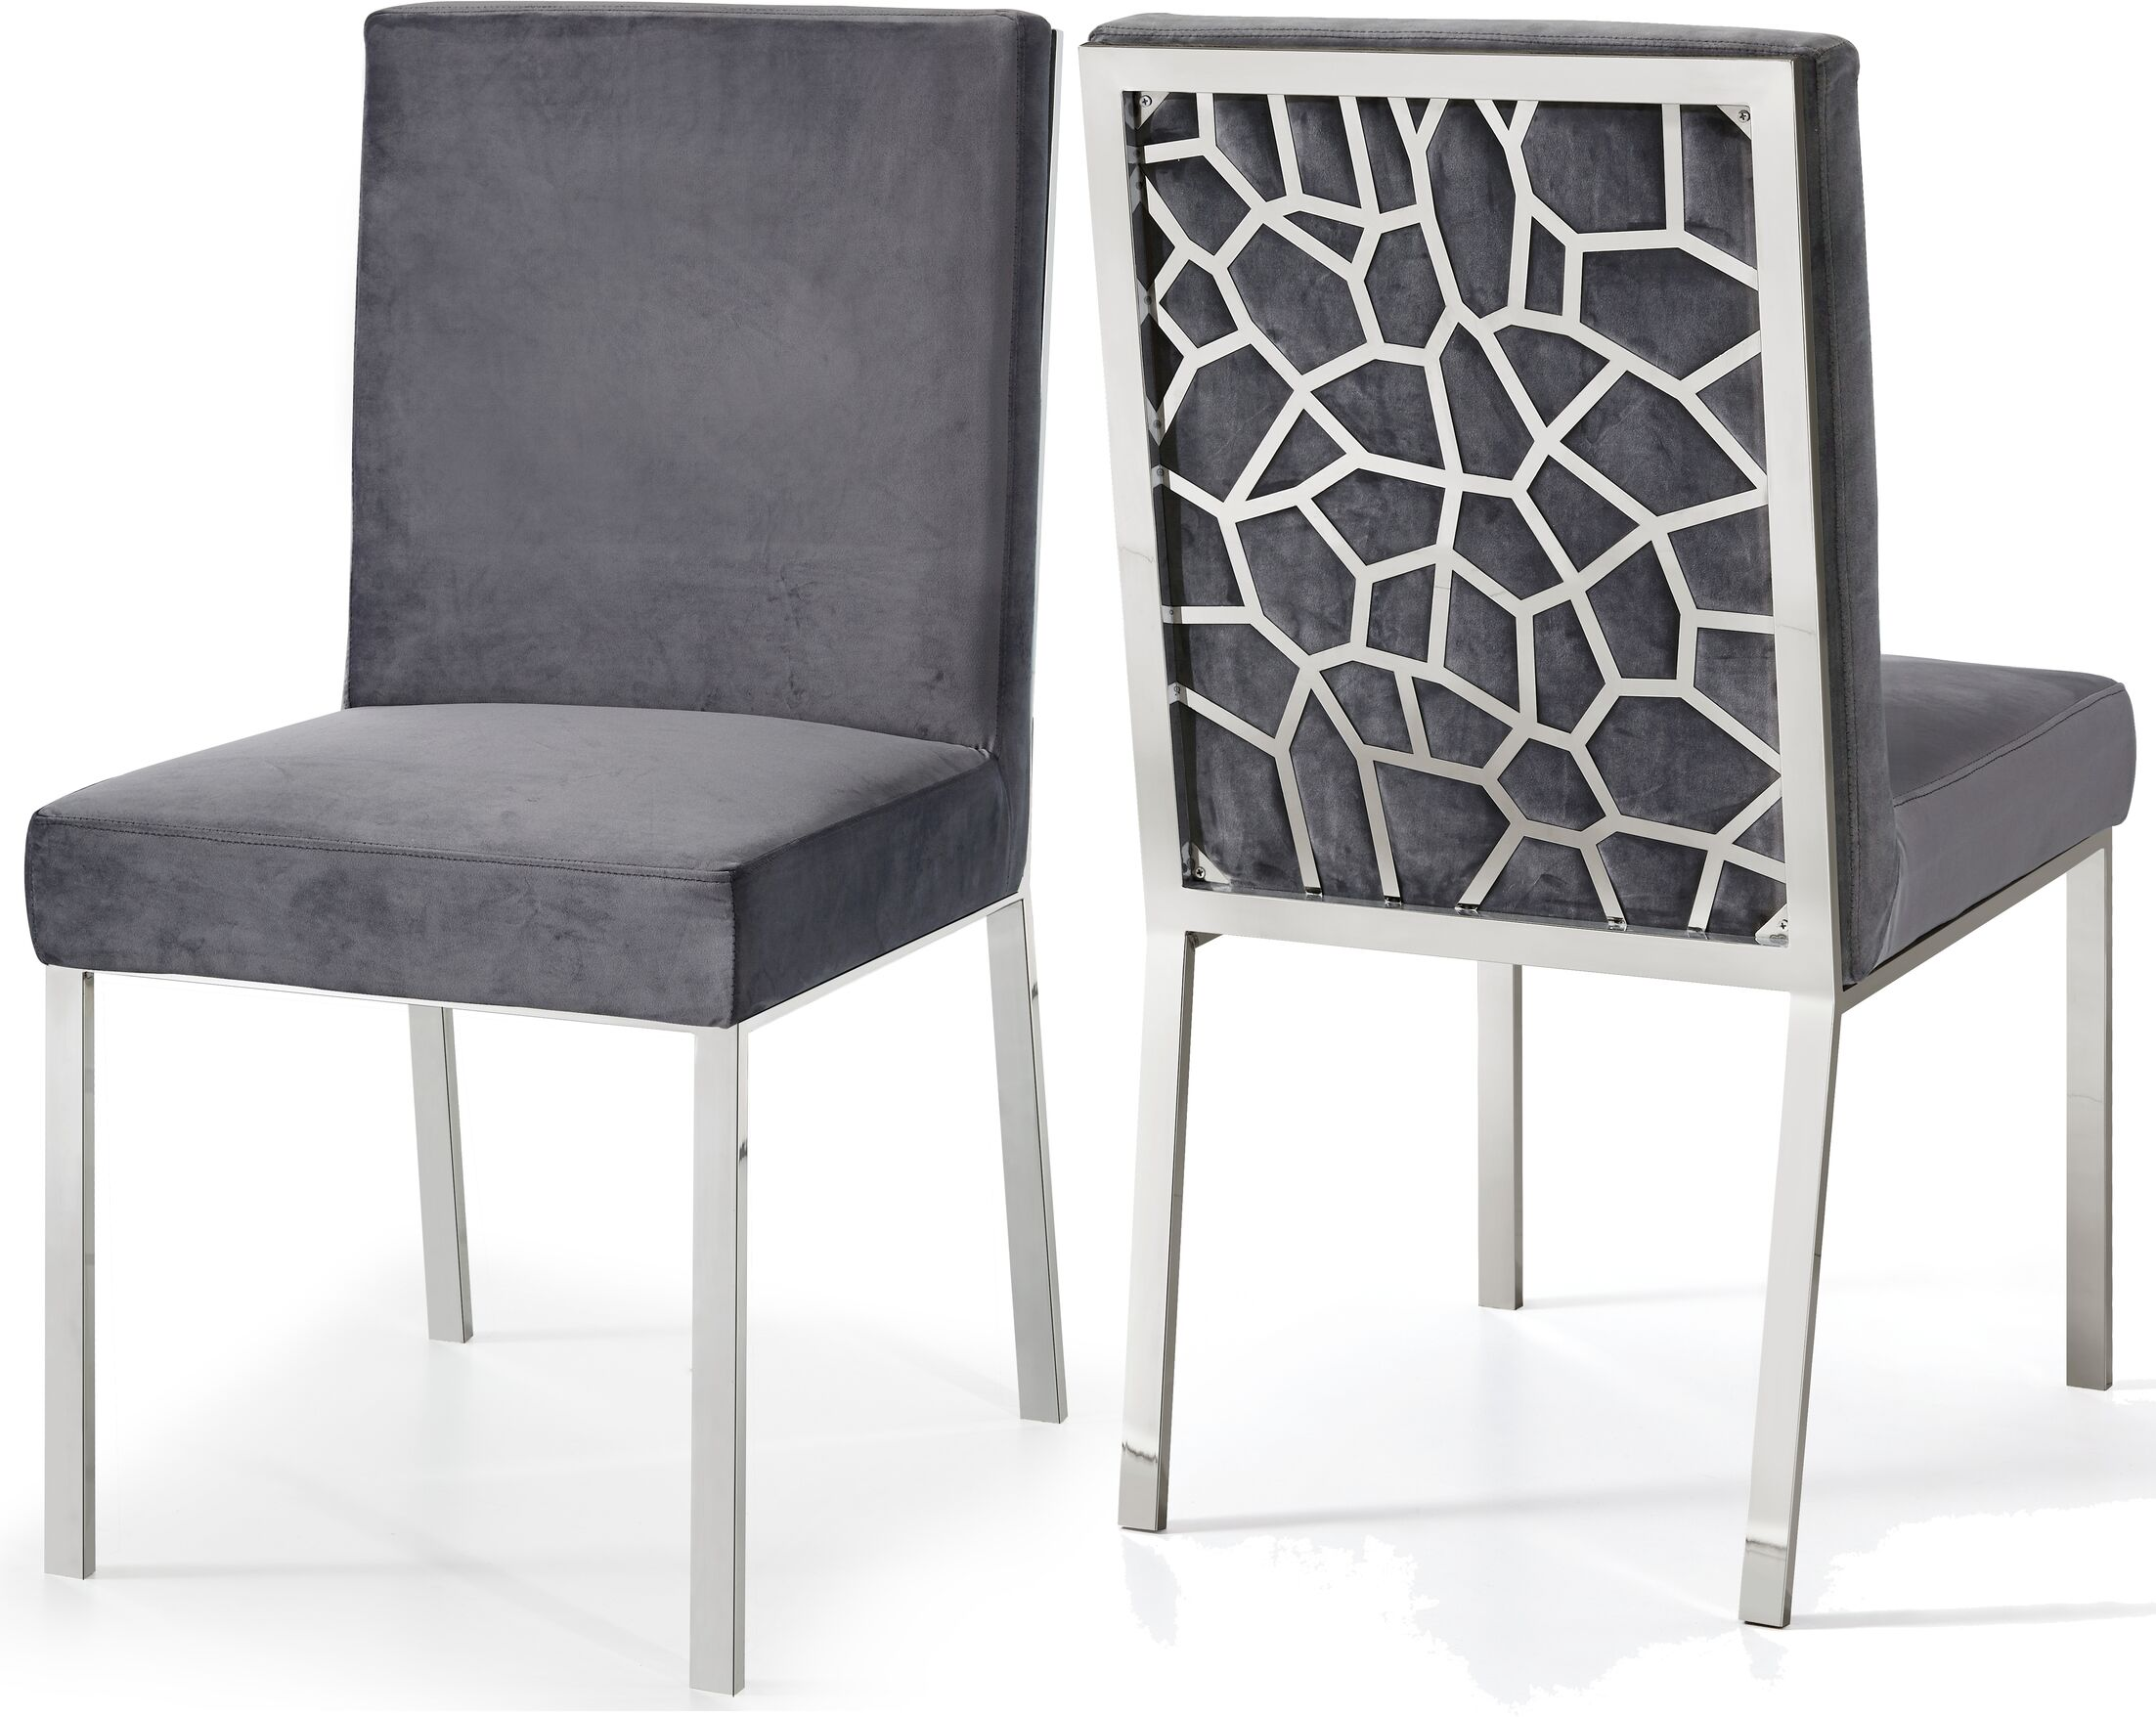 Hop Upholstered Dining Chair Upholstery Color: Gray, Base Color: Silver